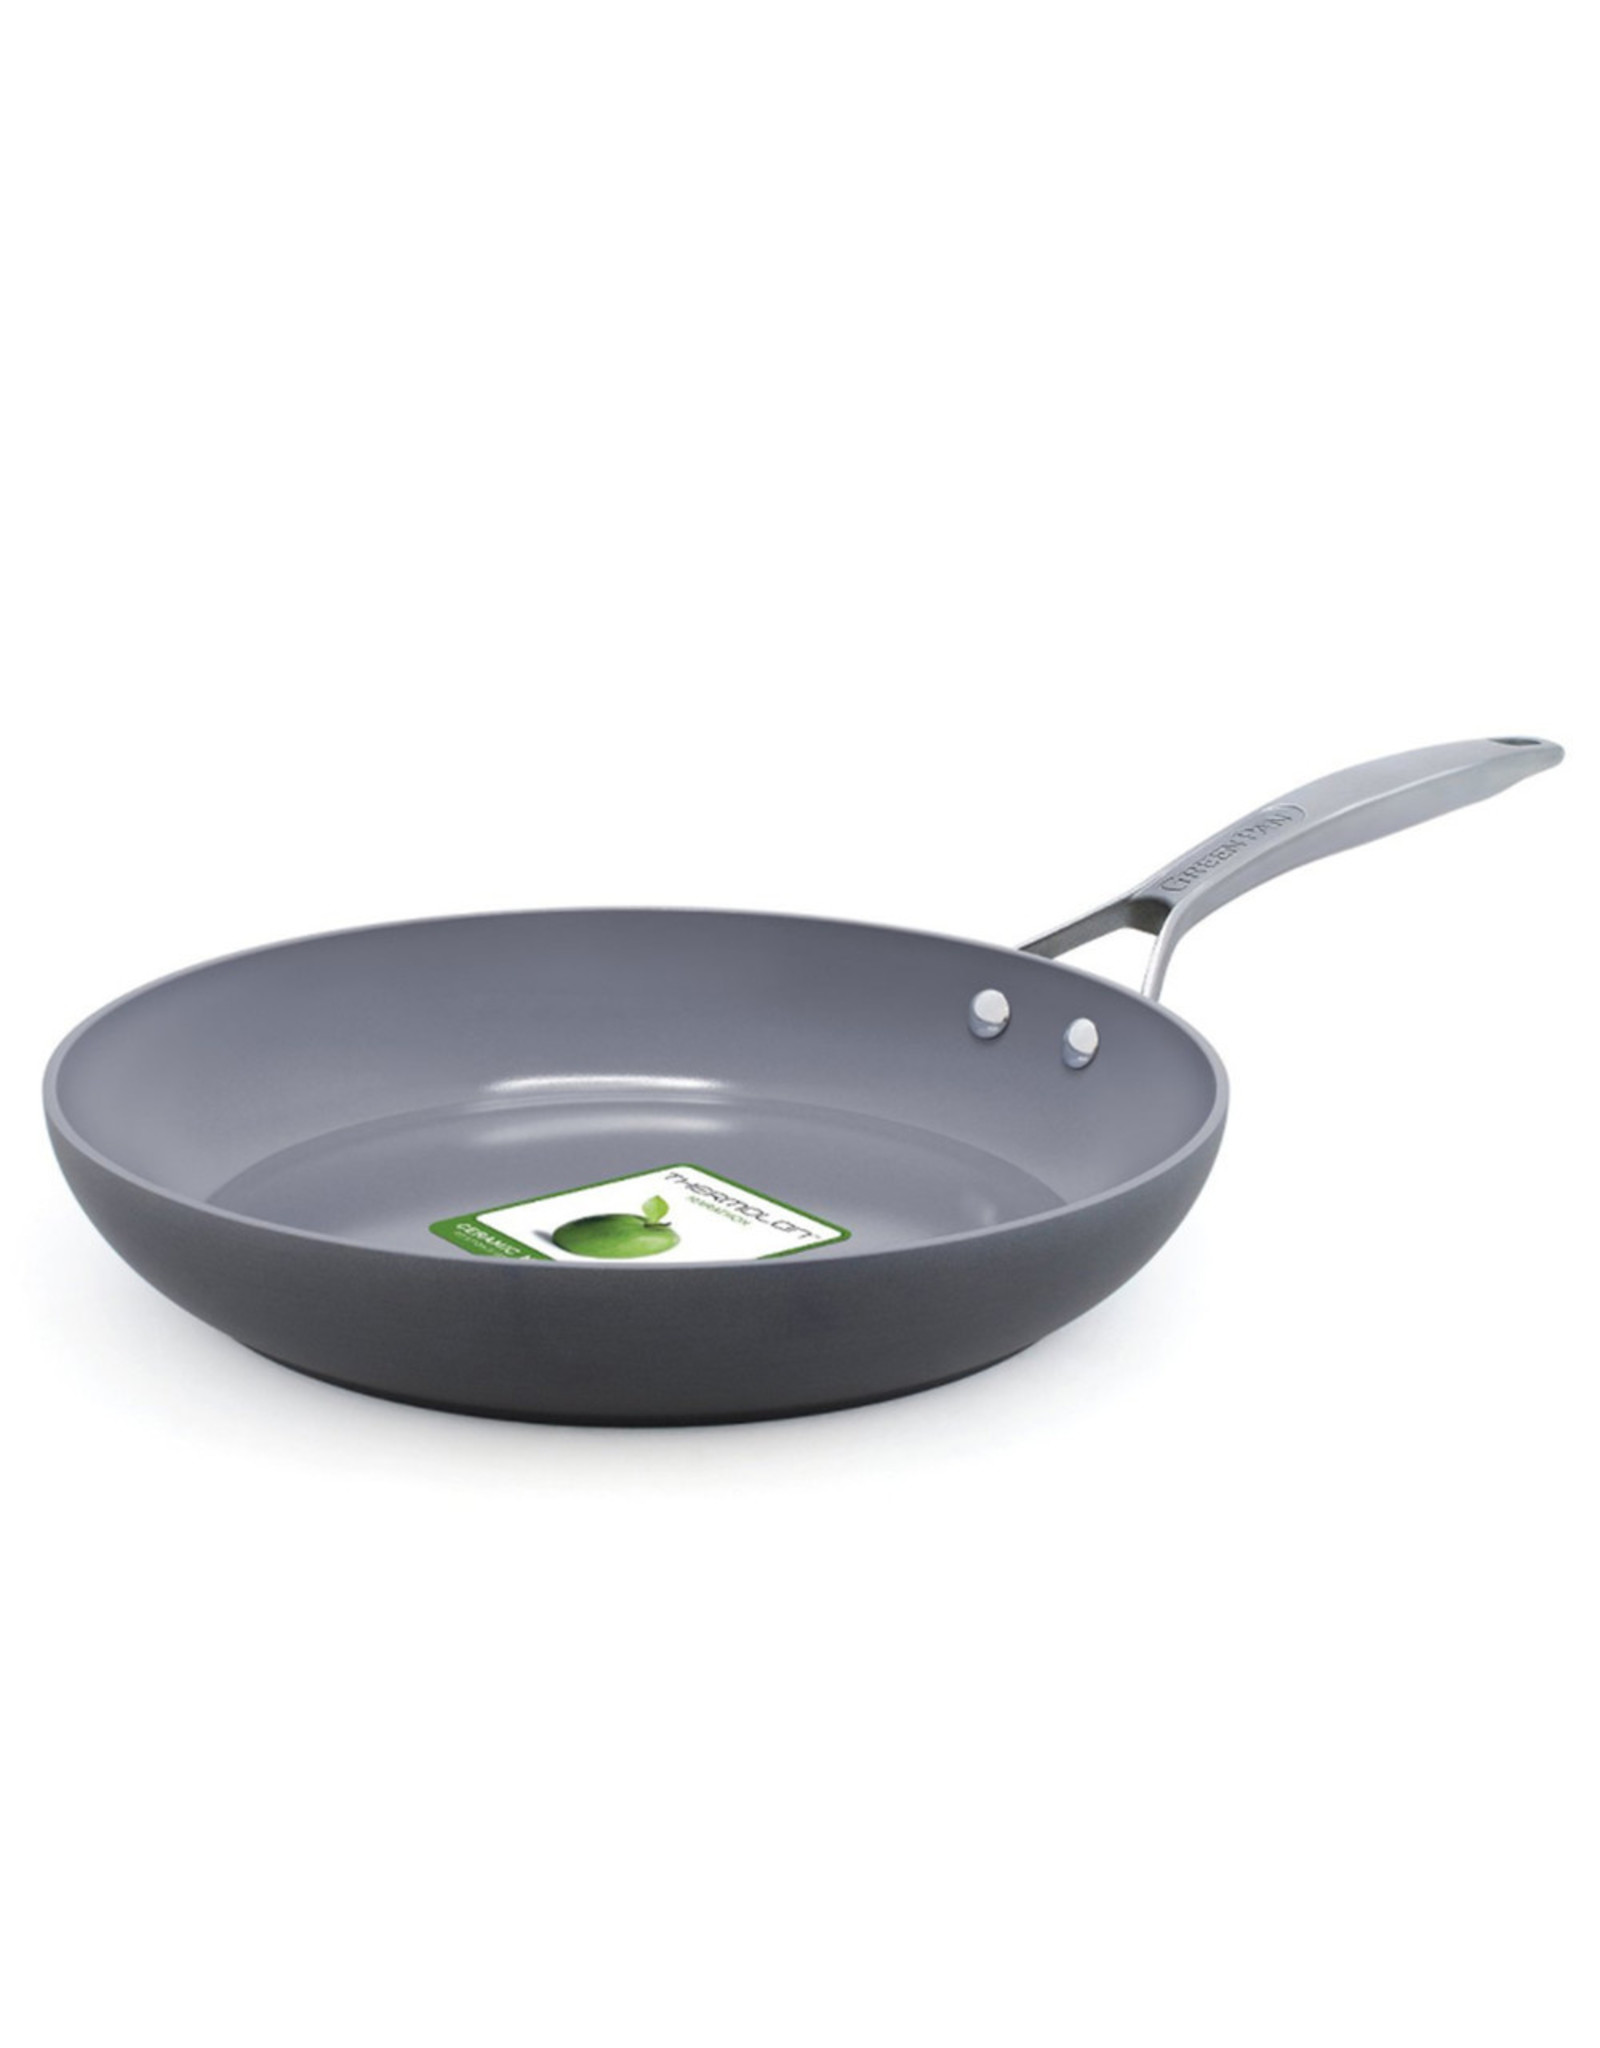 GreenPan GreenPan Paris Pro 10'' Ceramic Non-Stick Open Frypan